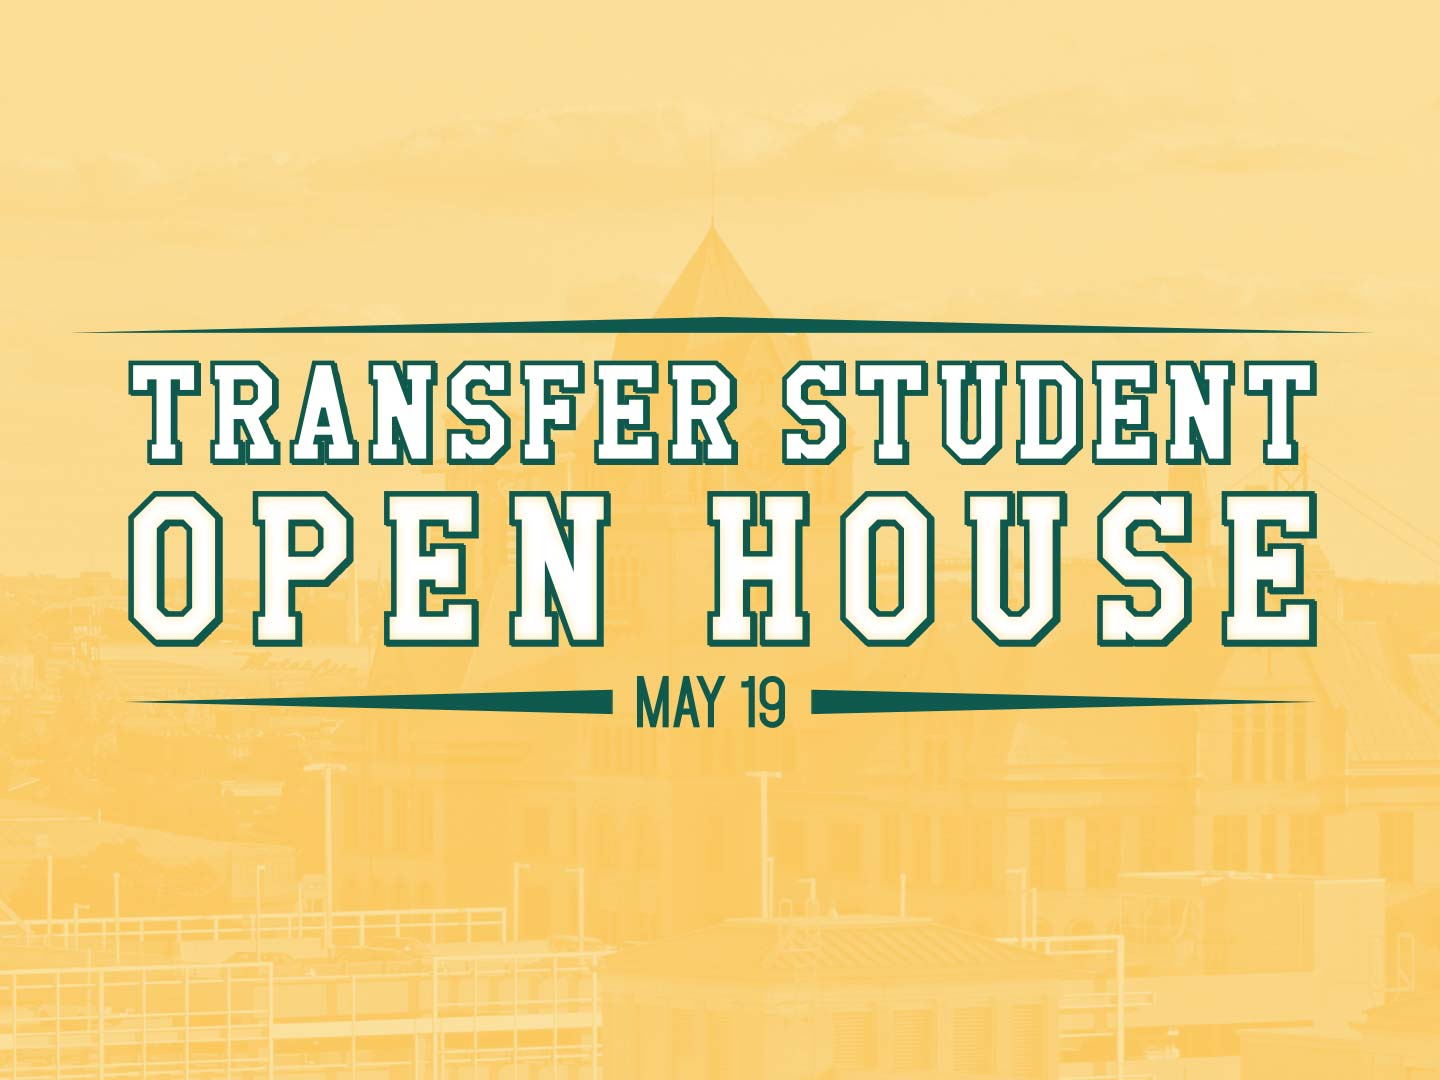 Learn about your transfer options, meet with representatives from academic programs, take a campus tour and more!